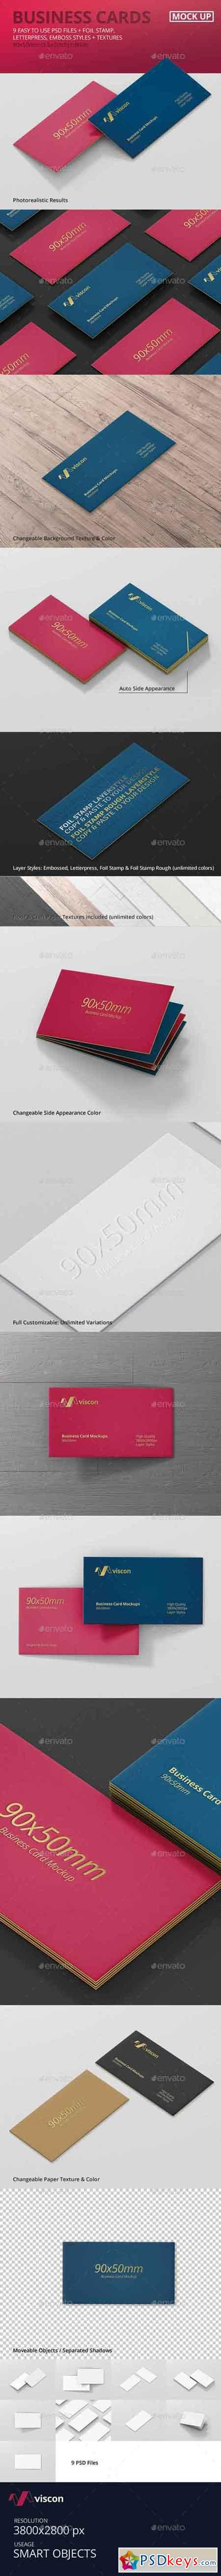 Business Card Mock Ups Free Download shop